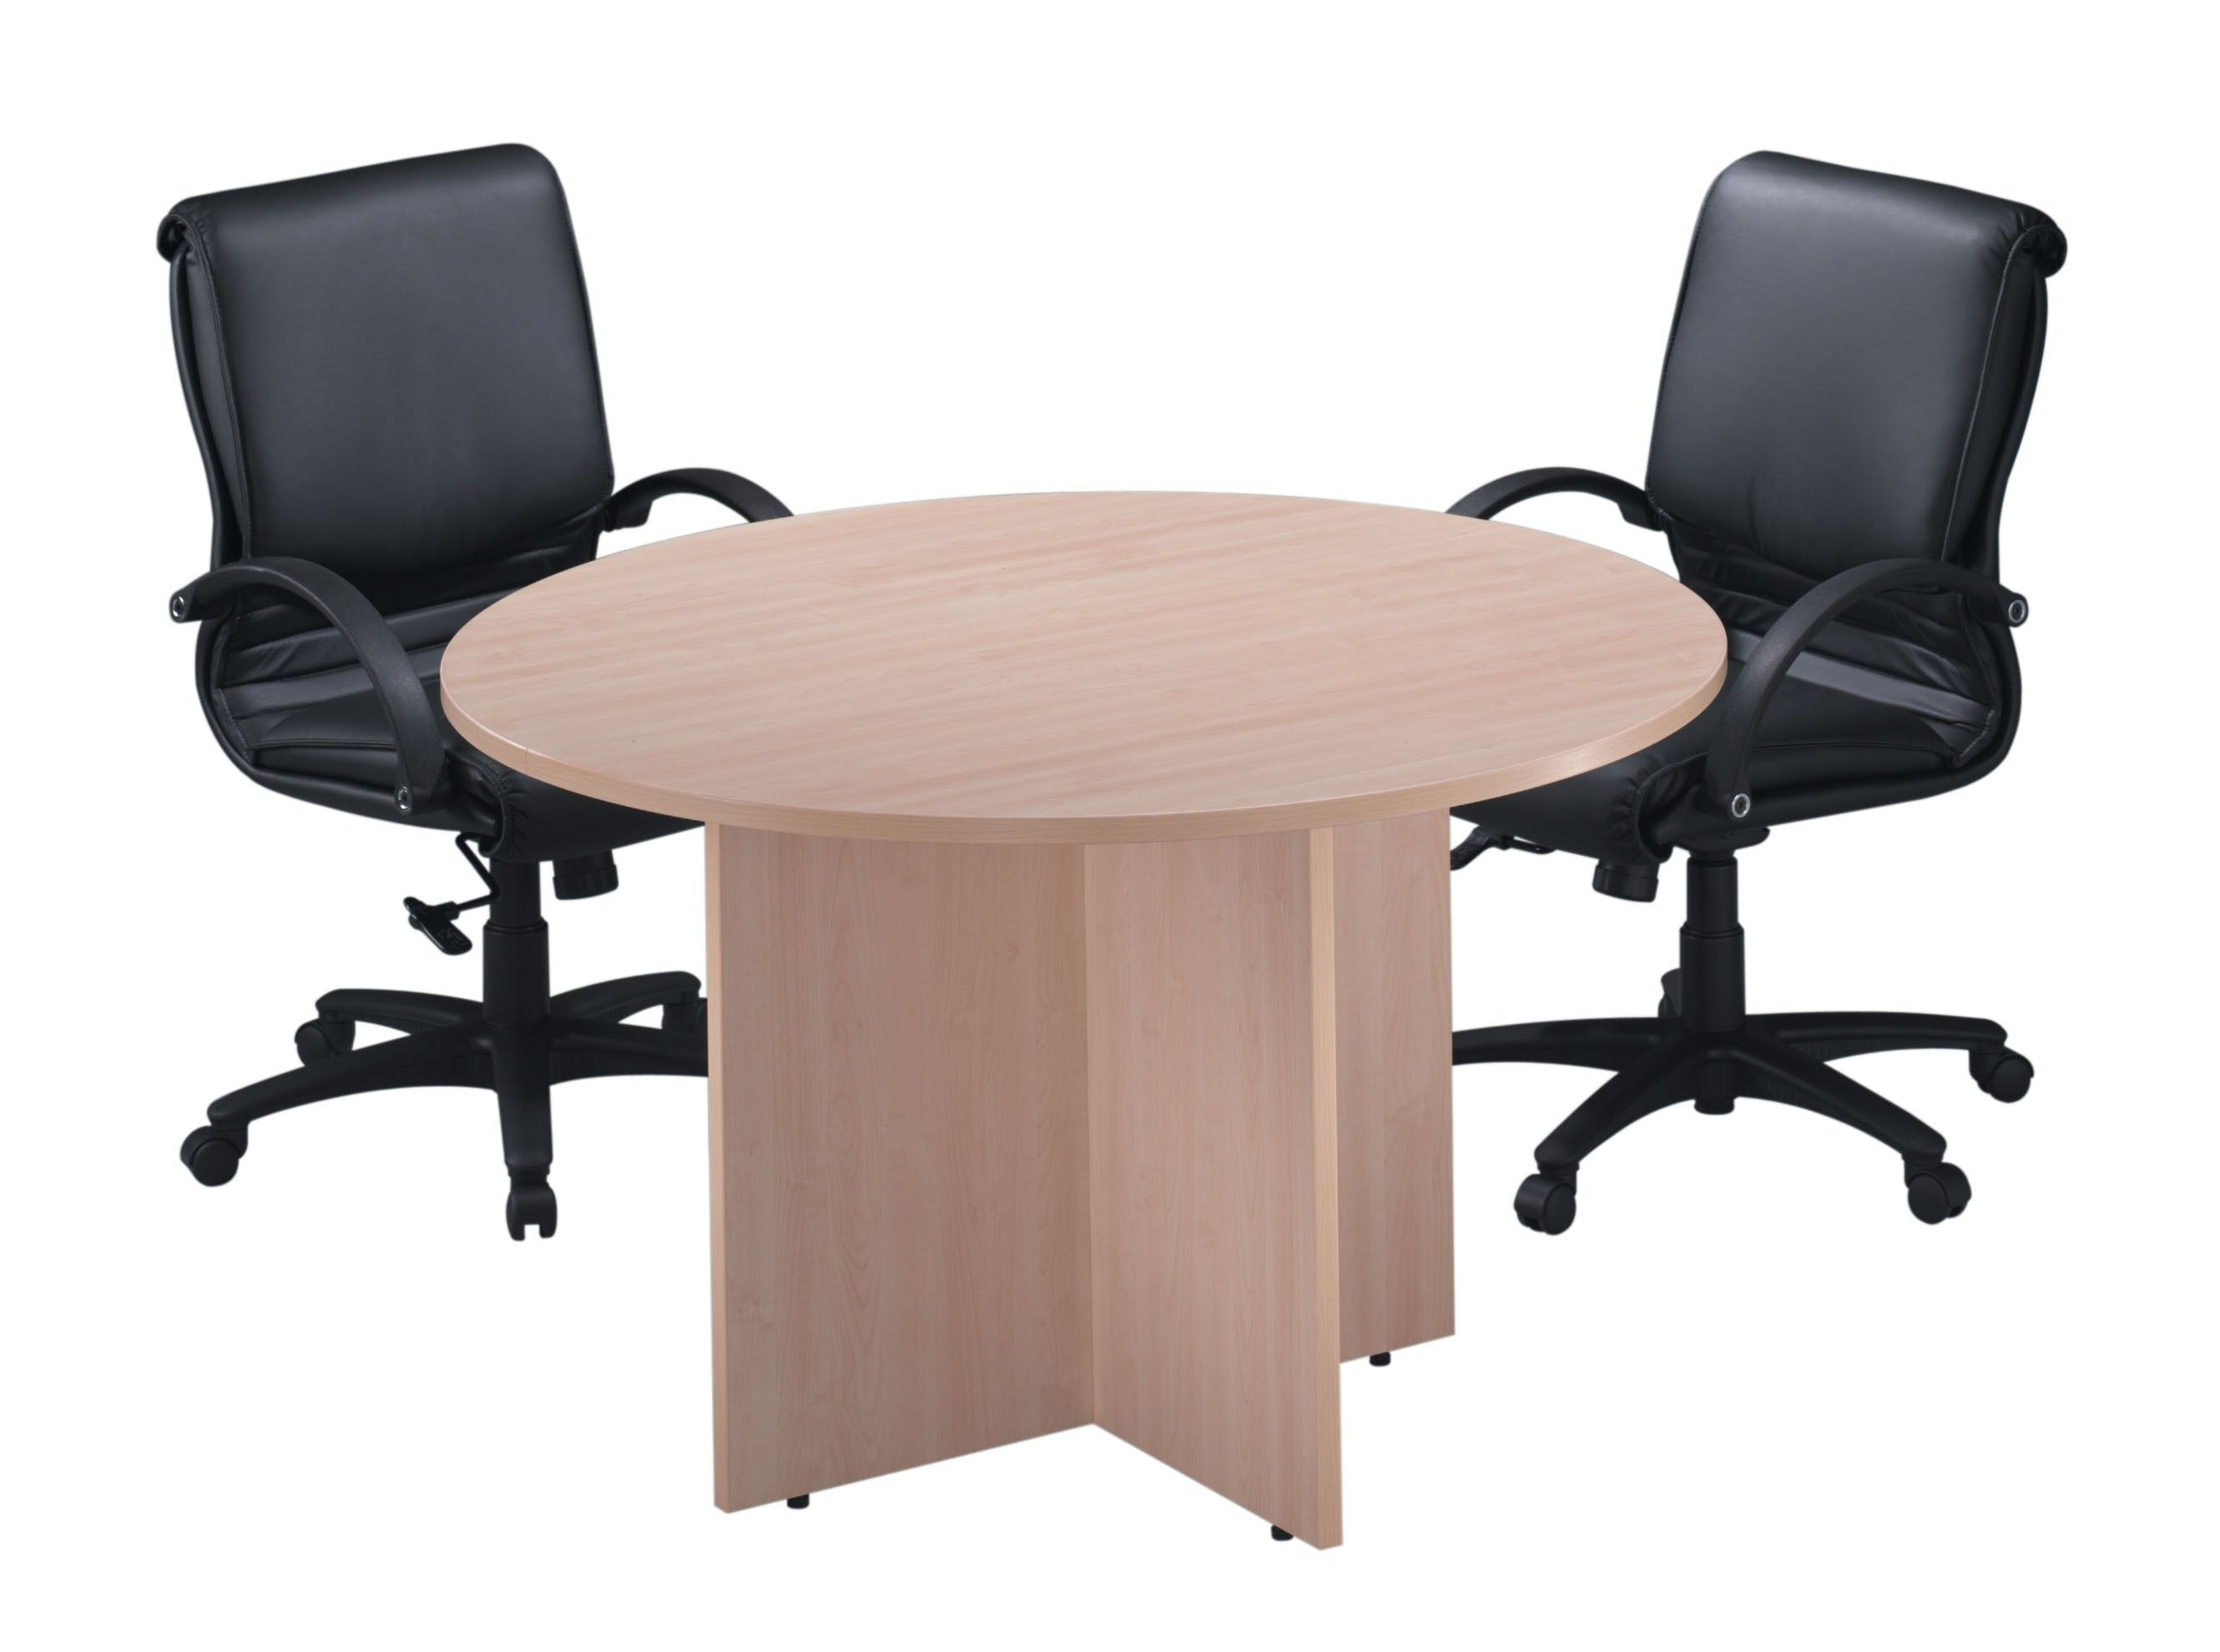 Round Office Desks Round Office Table Office Furniture Set Office Table And Chairs